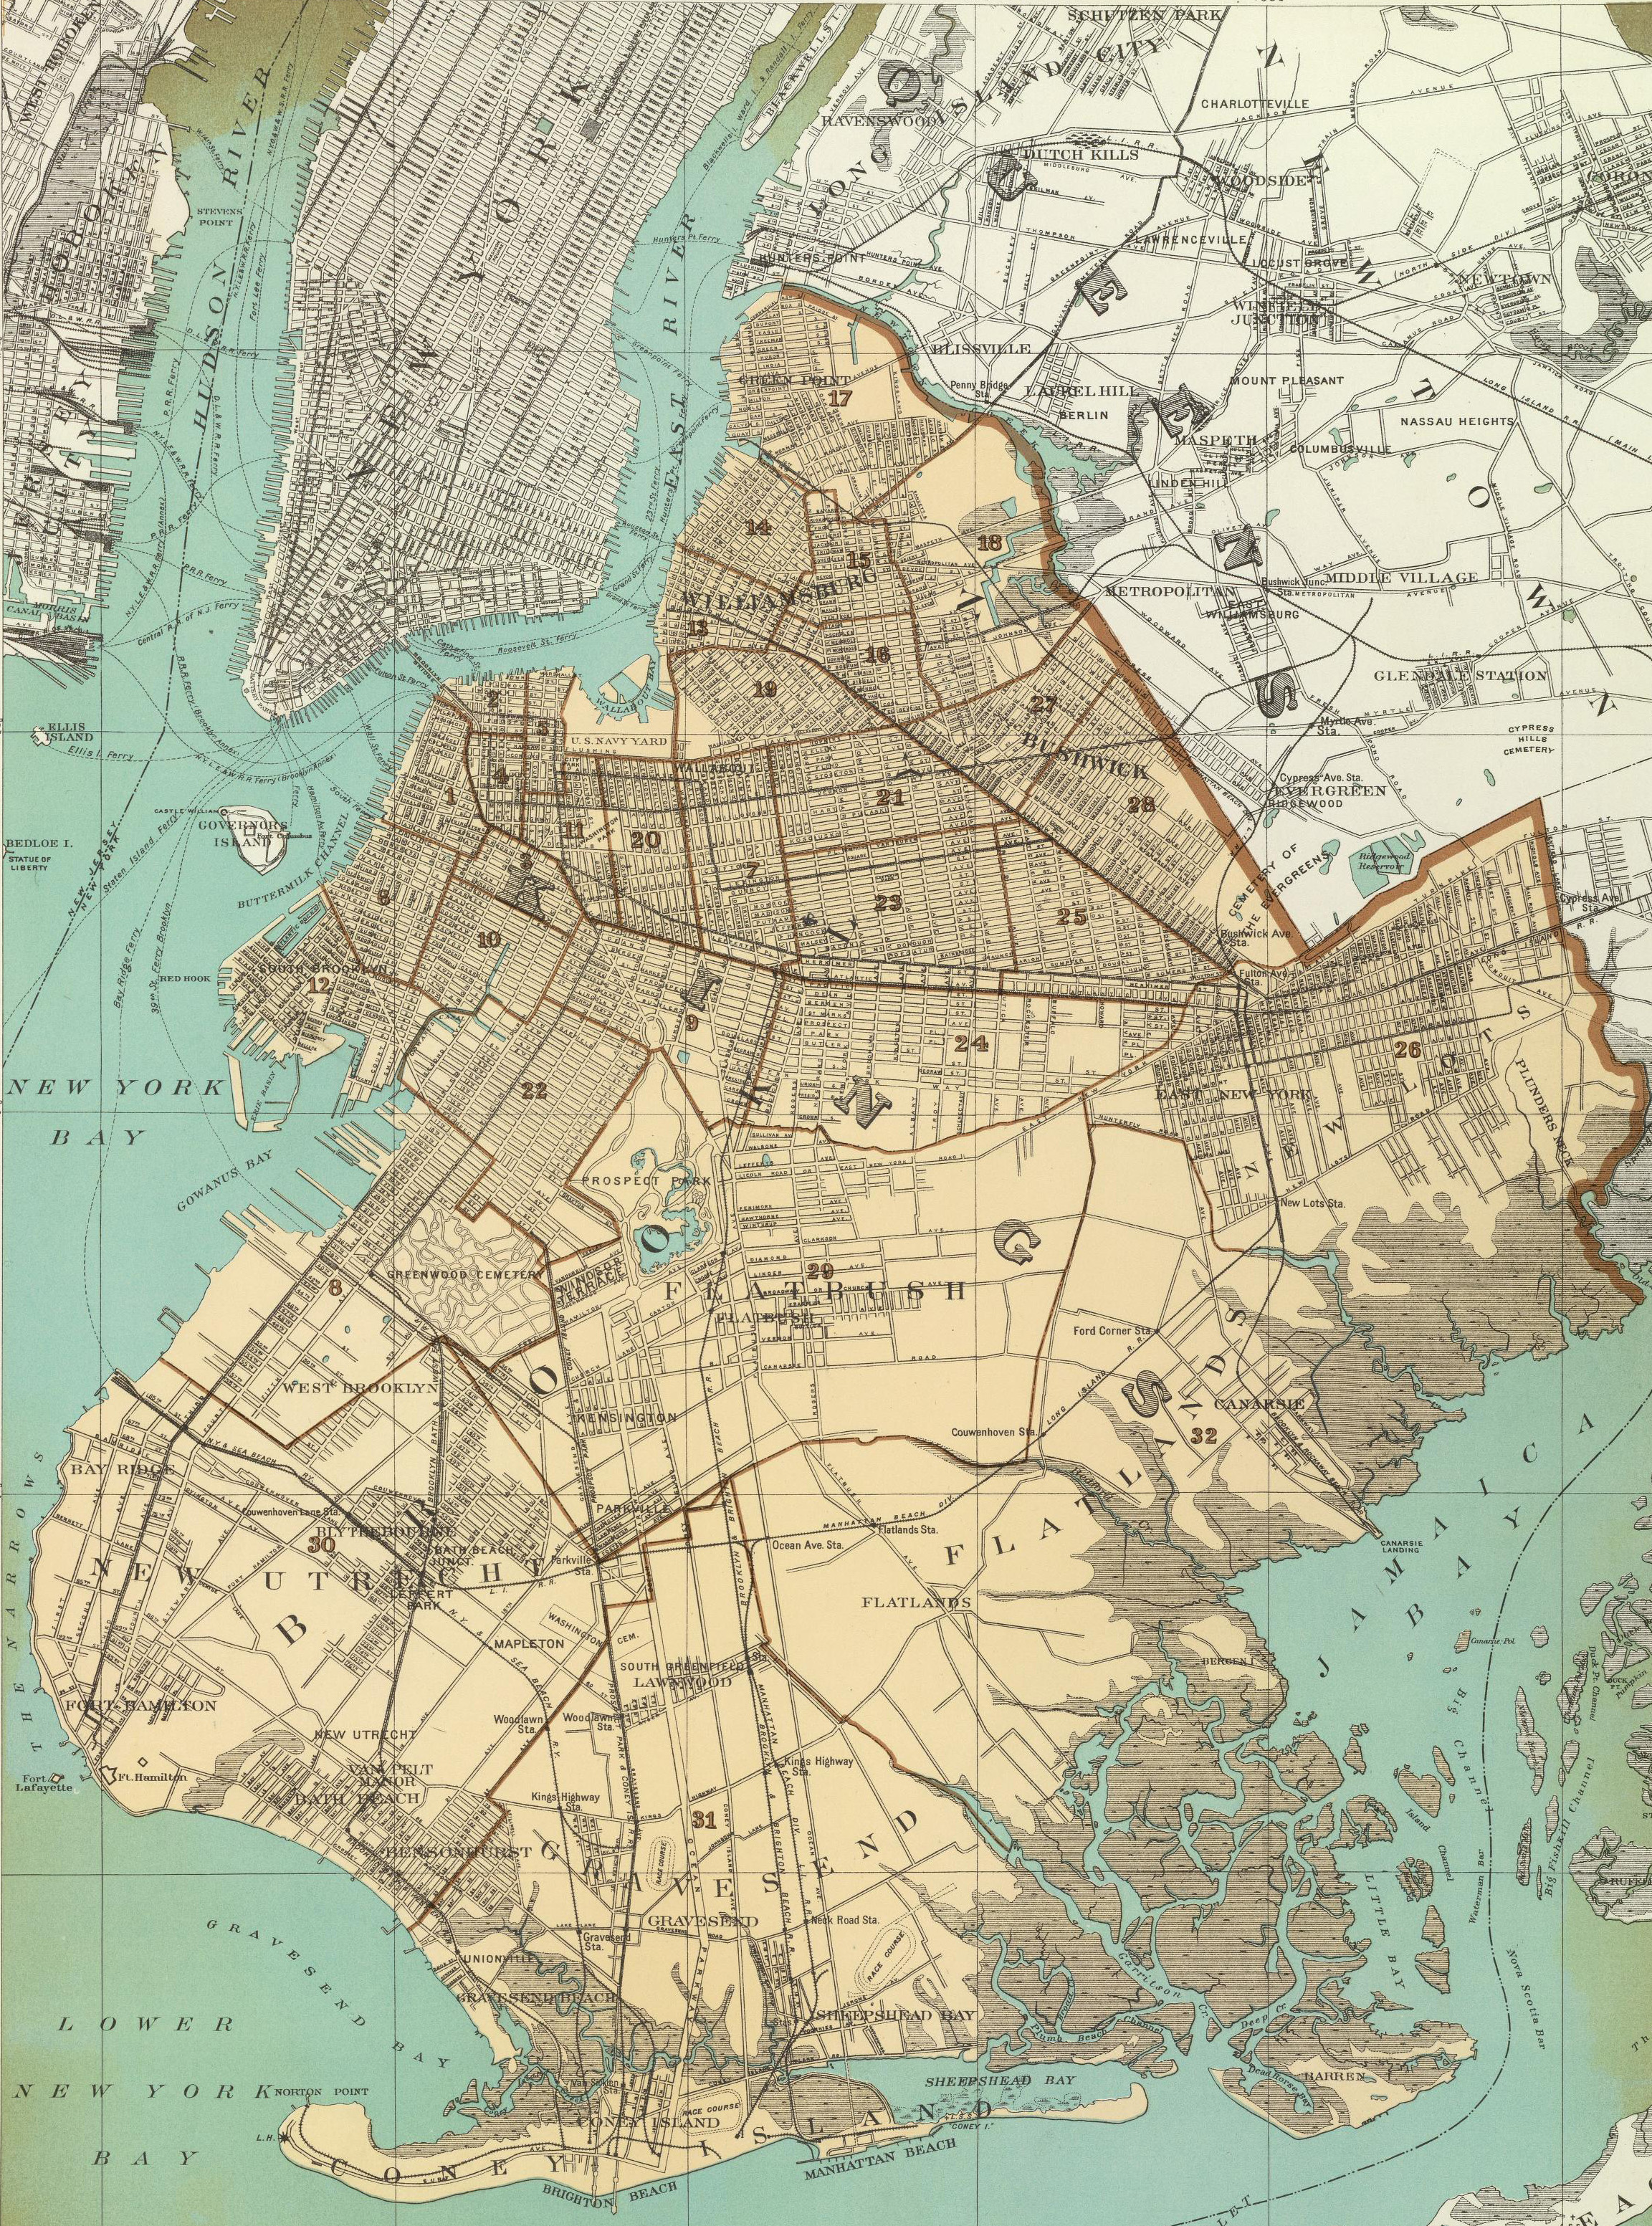 Historical Cities New York City Brooklyn And Surrounding Islands